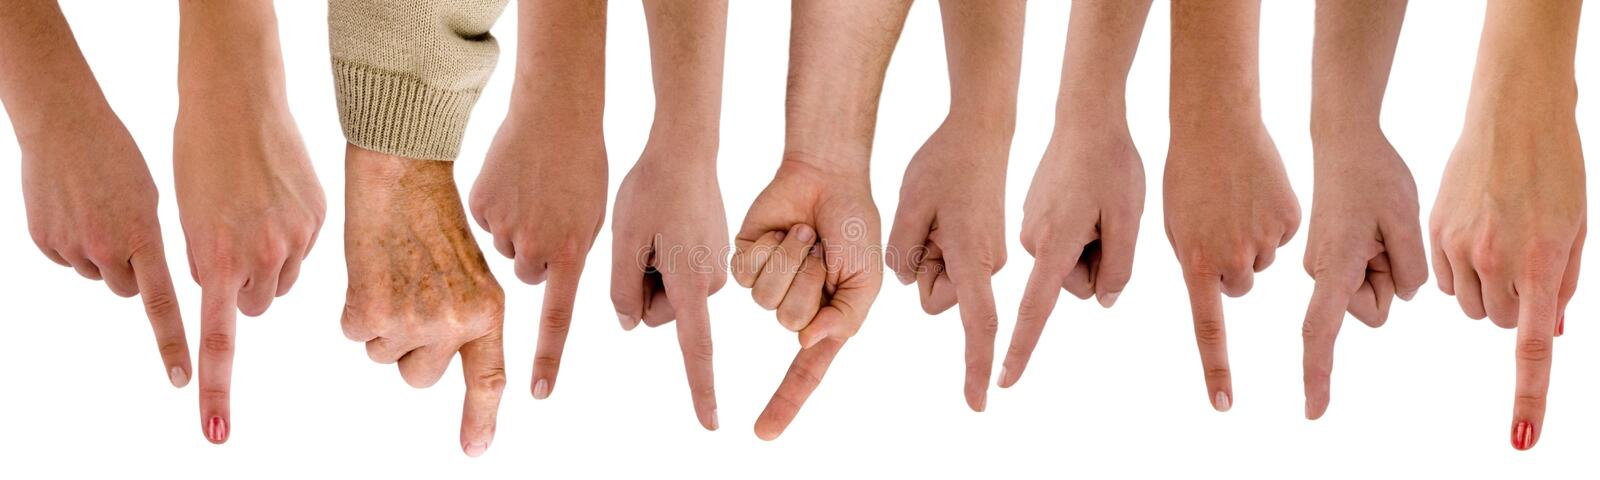 Download Hands and pointing fingers stock image. Image of pointing - 6548561